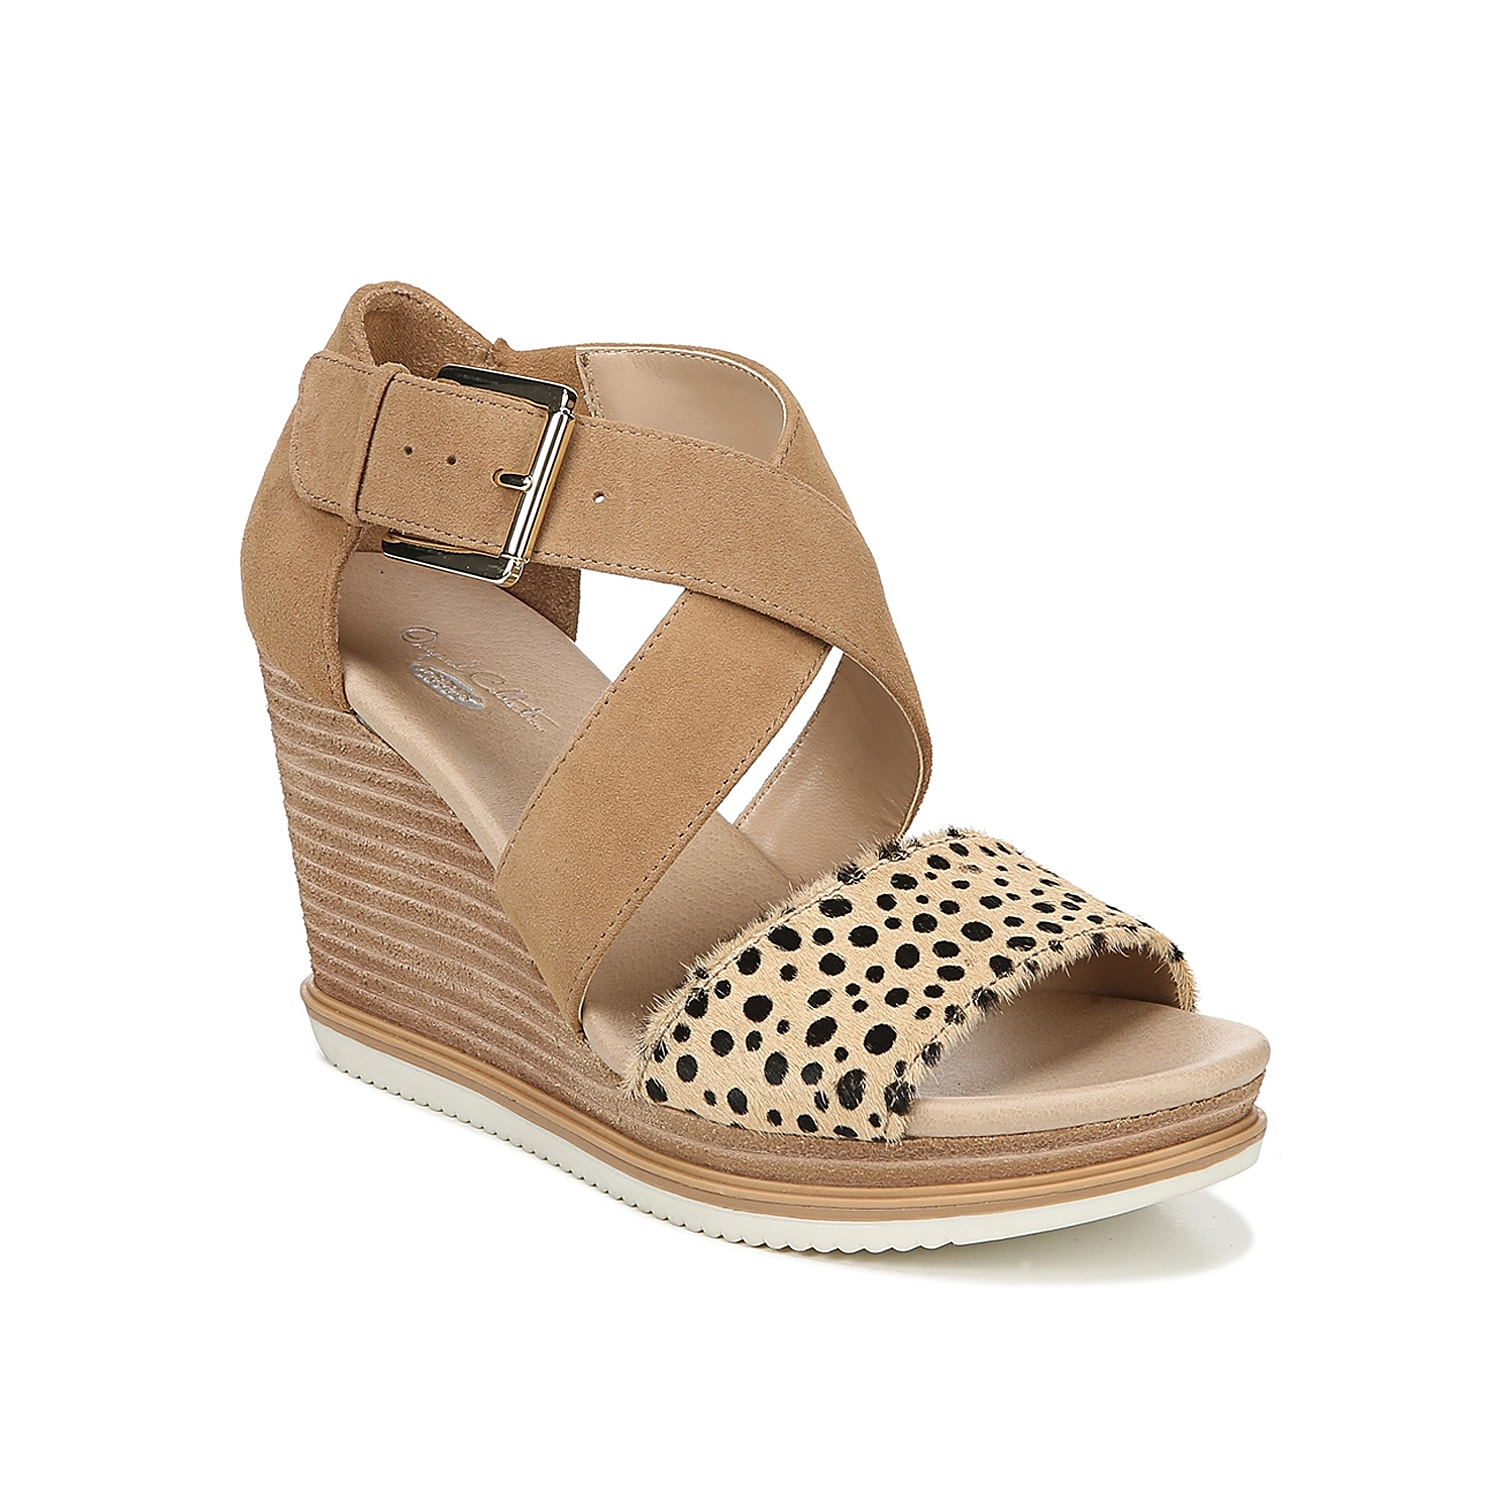 Stand high and confident when wearing the Sweet Escape wedge sandal from Dr. Scholl\\\'s. This silhouette is fashioned with crisscross straps and a sporty-inspired midsole for extra intrigue!